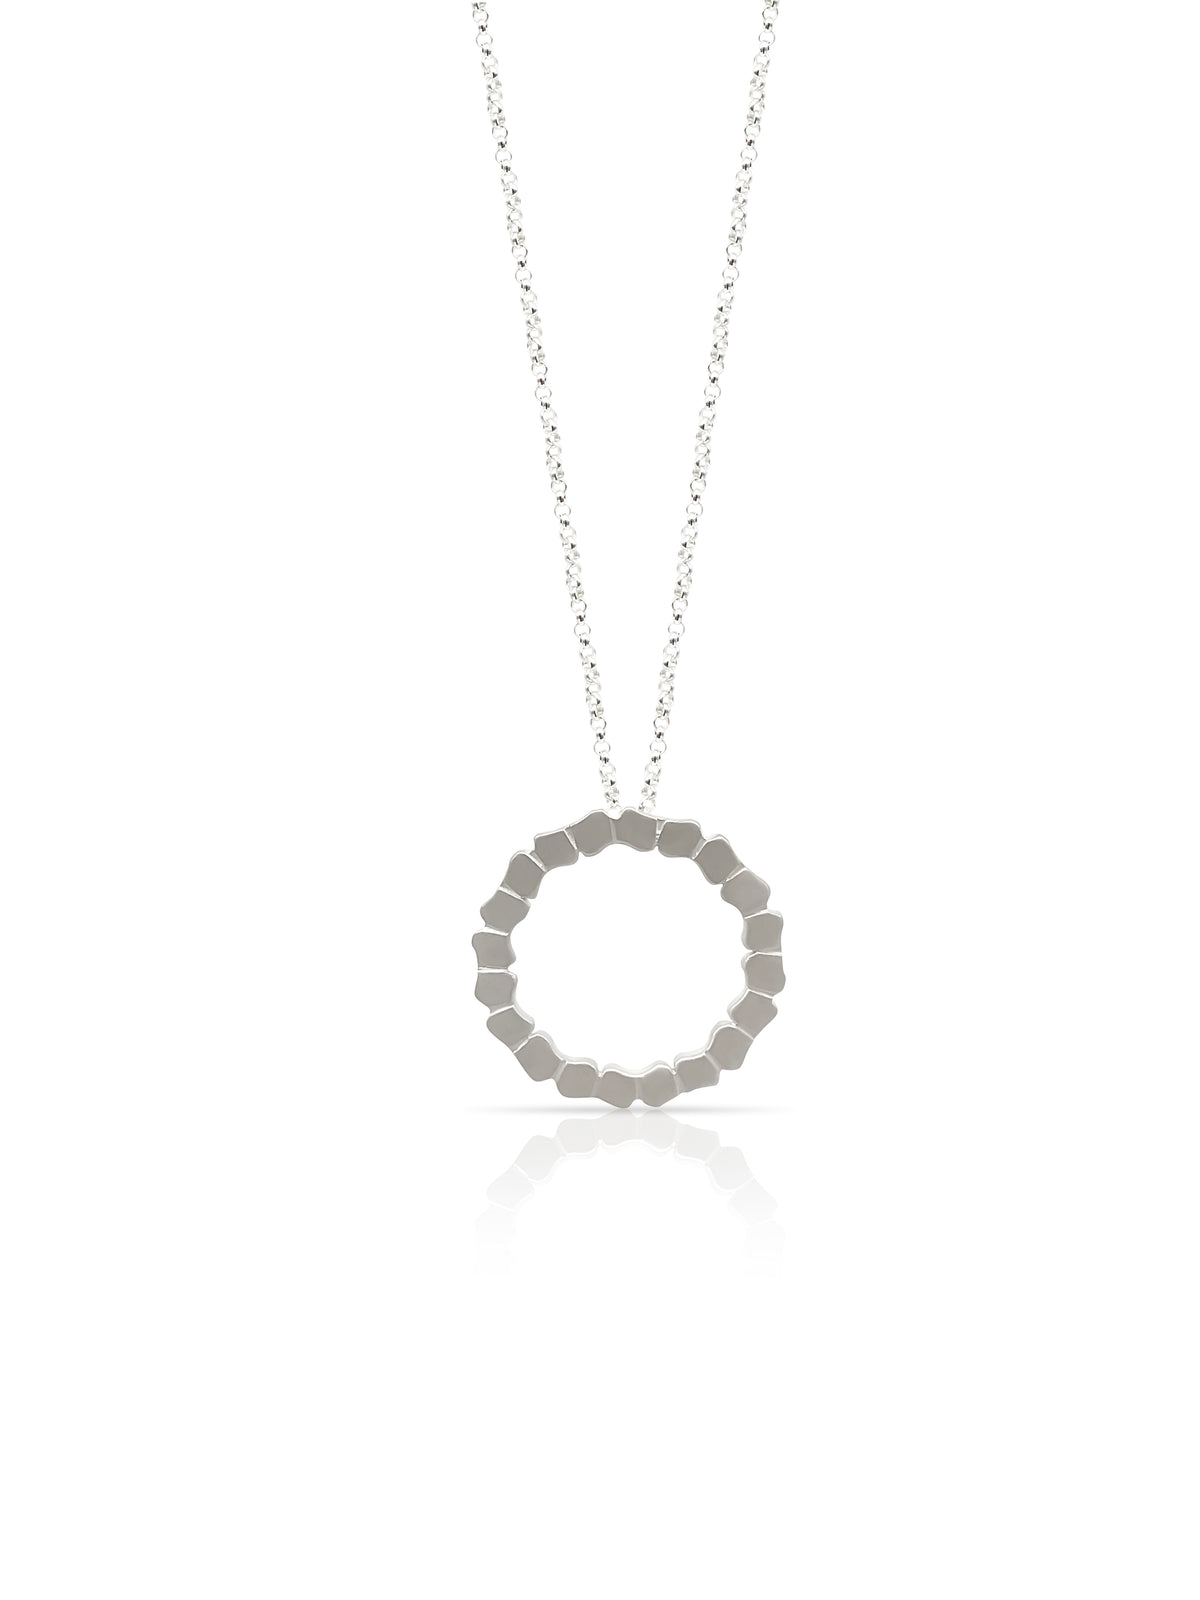 Artisan Pendant Handcrafted Jewelry Sterling Silver Pendant Circle Pendant